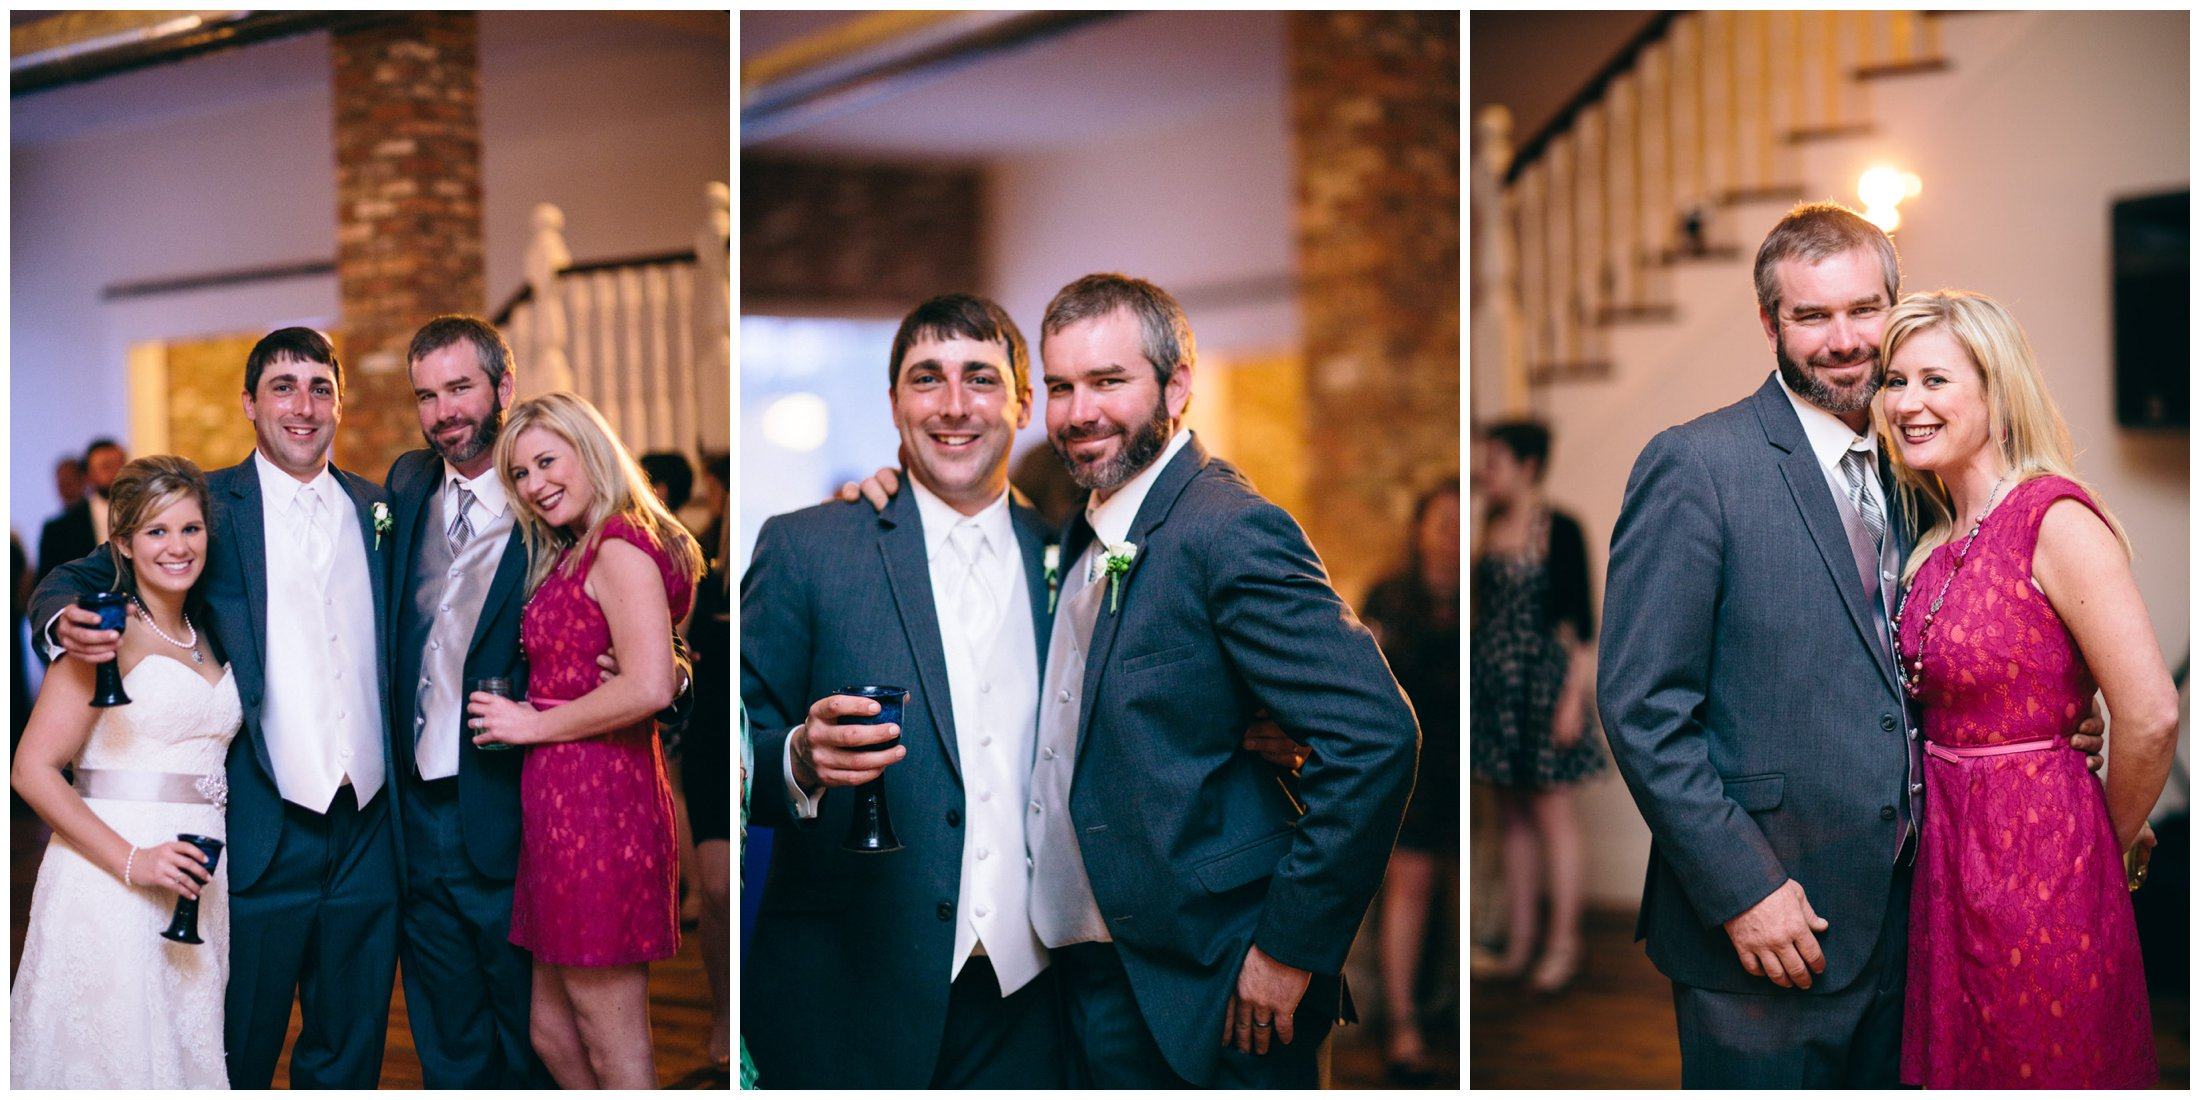 OxfordMSWeddingPhotographers_0116.jpg